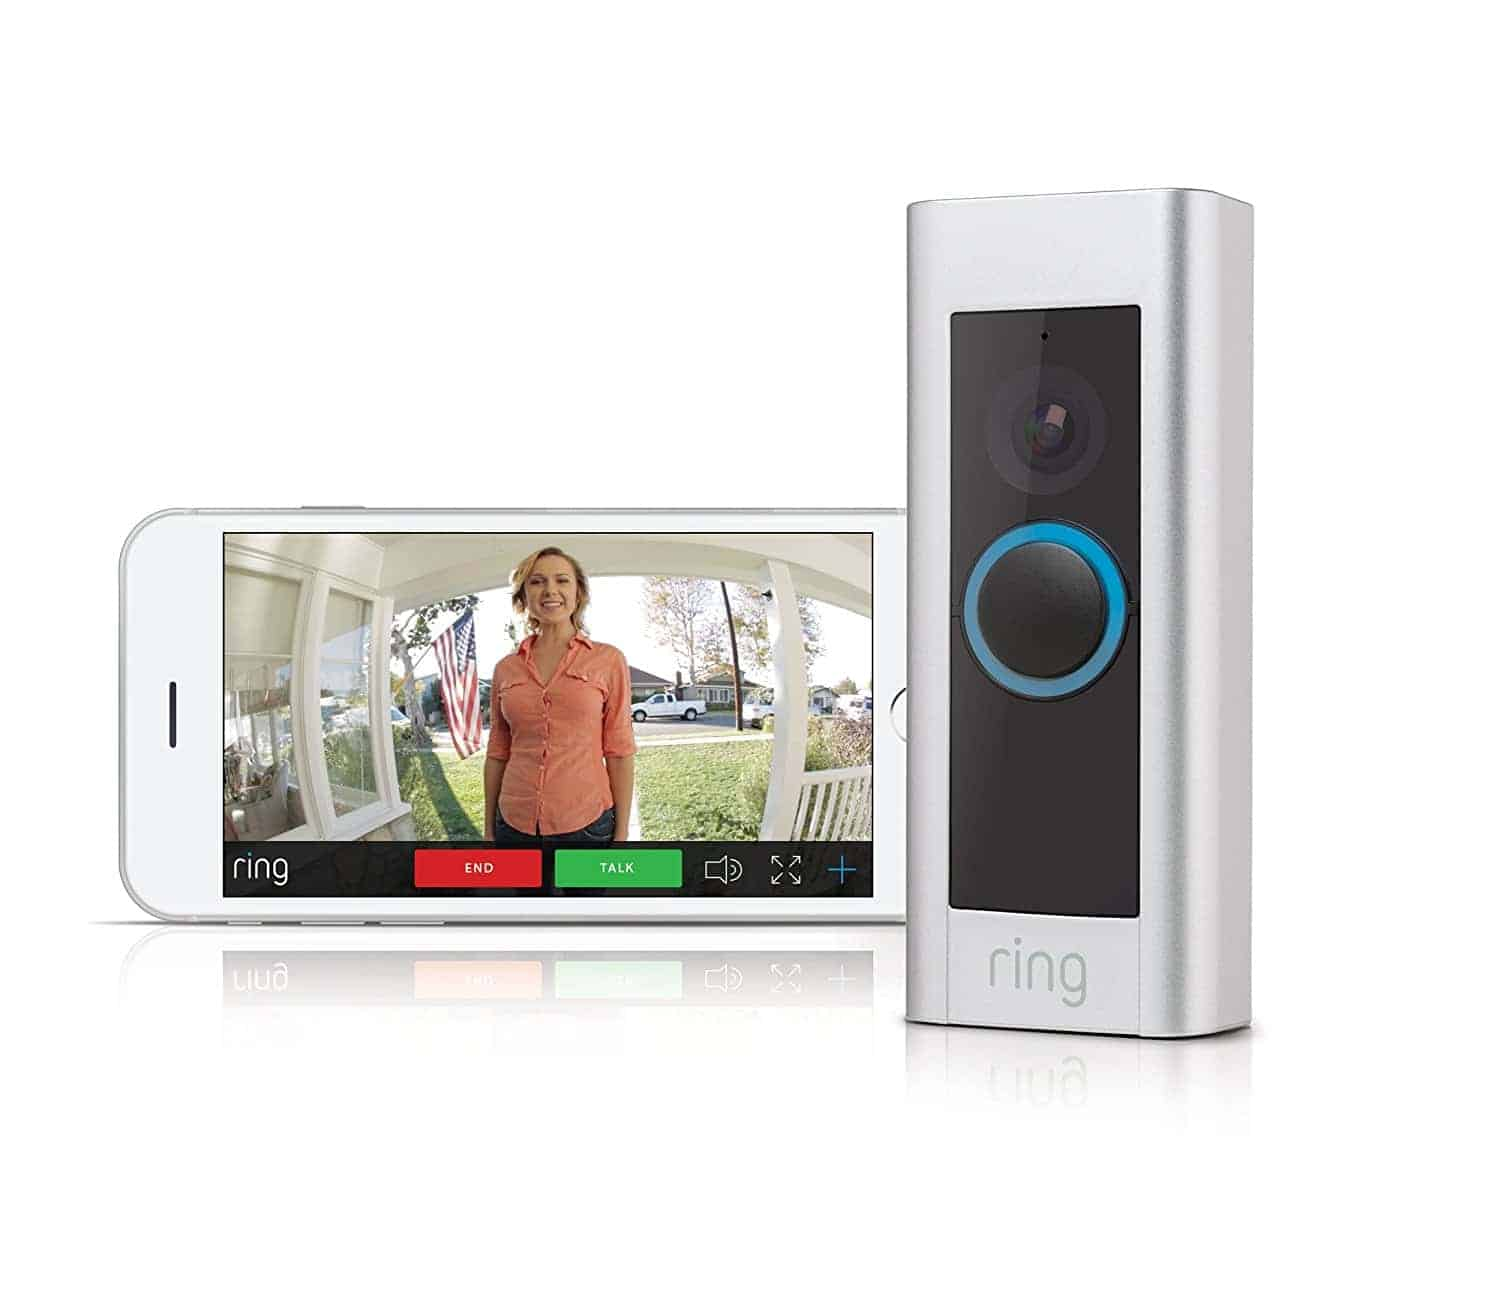 ring doorbell for sale cooper 3 way dimmer switch wiring diagram amazon prime day 2017 video pro 29 off 7